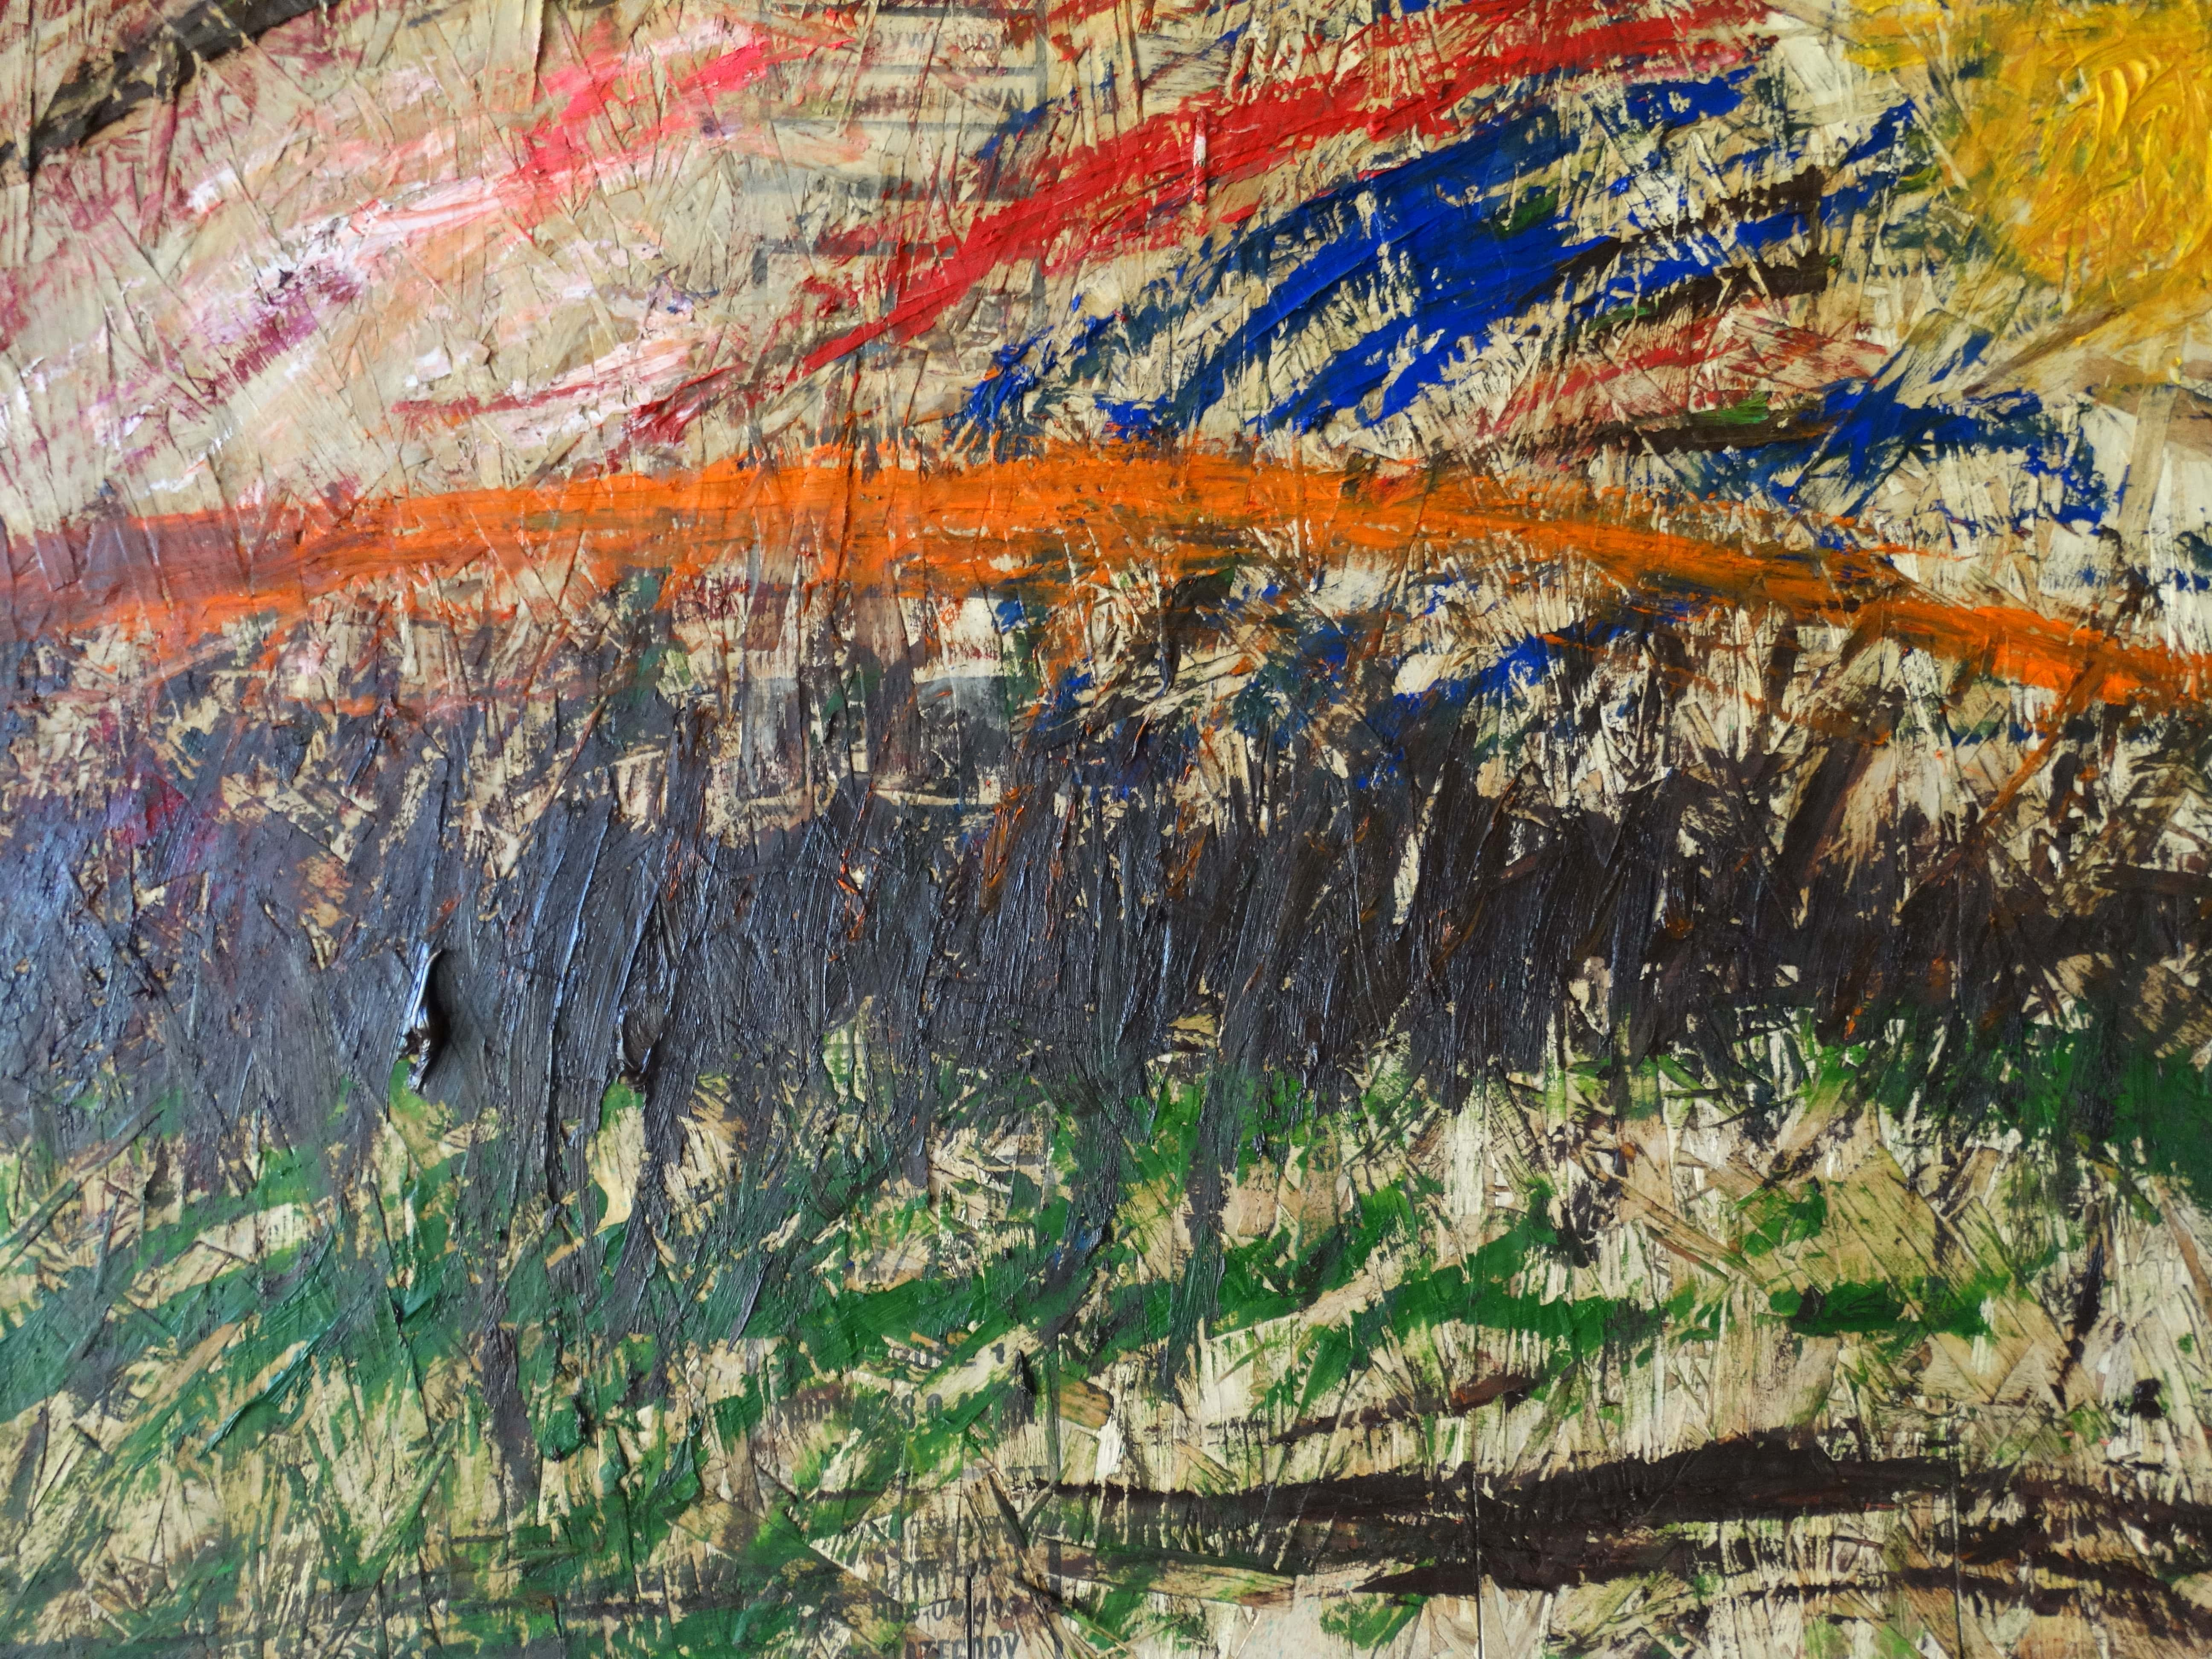 Orange Hill Without Trees artwork by Eric McCuaig - art listed for sale on Artplode